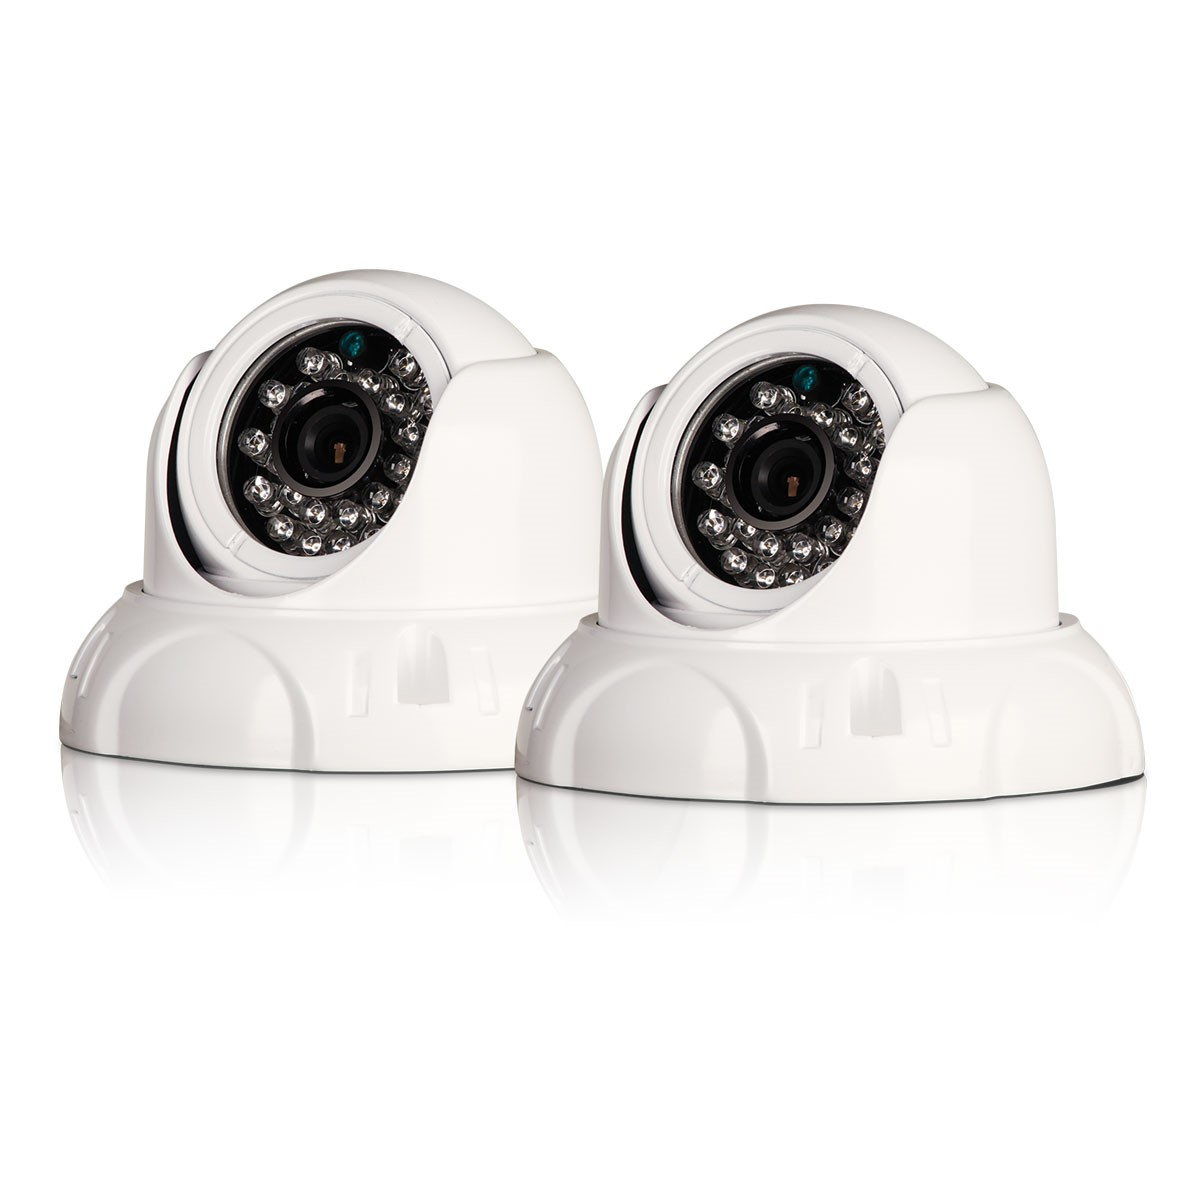 Swann PRO-736 Multi-Purpose Dome Security Camera with IR Night Vision Twin Pack